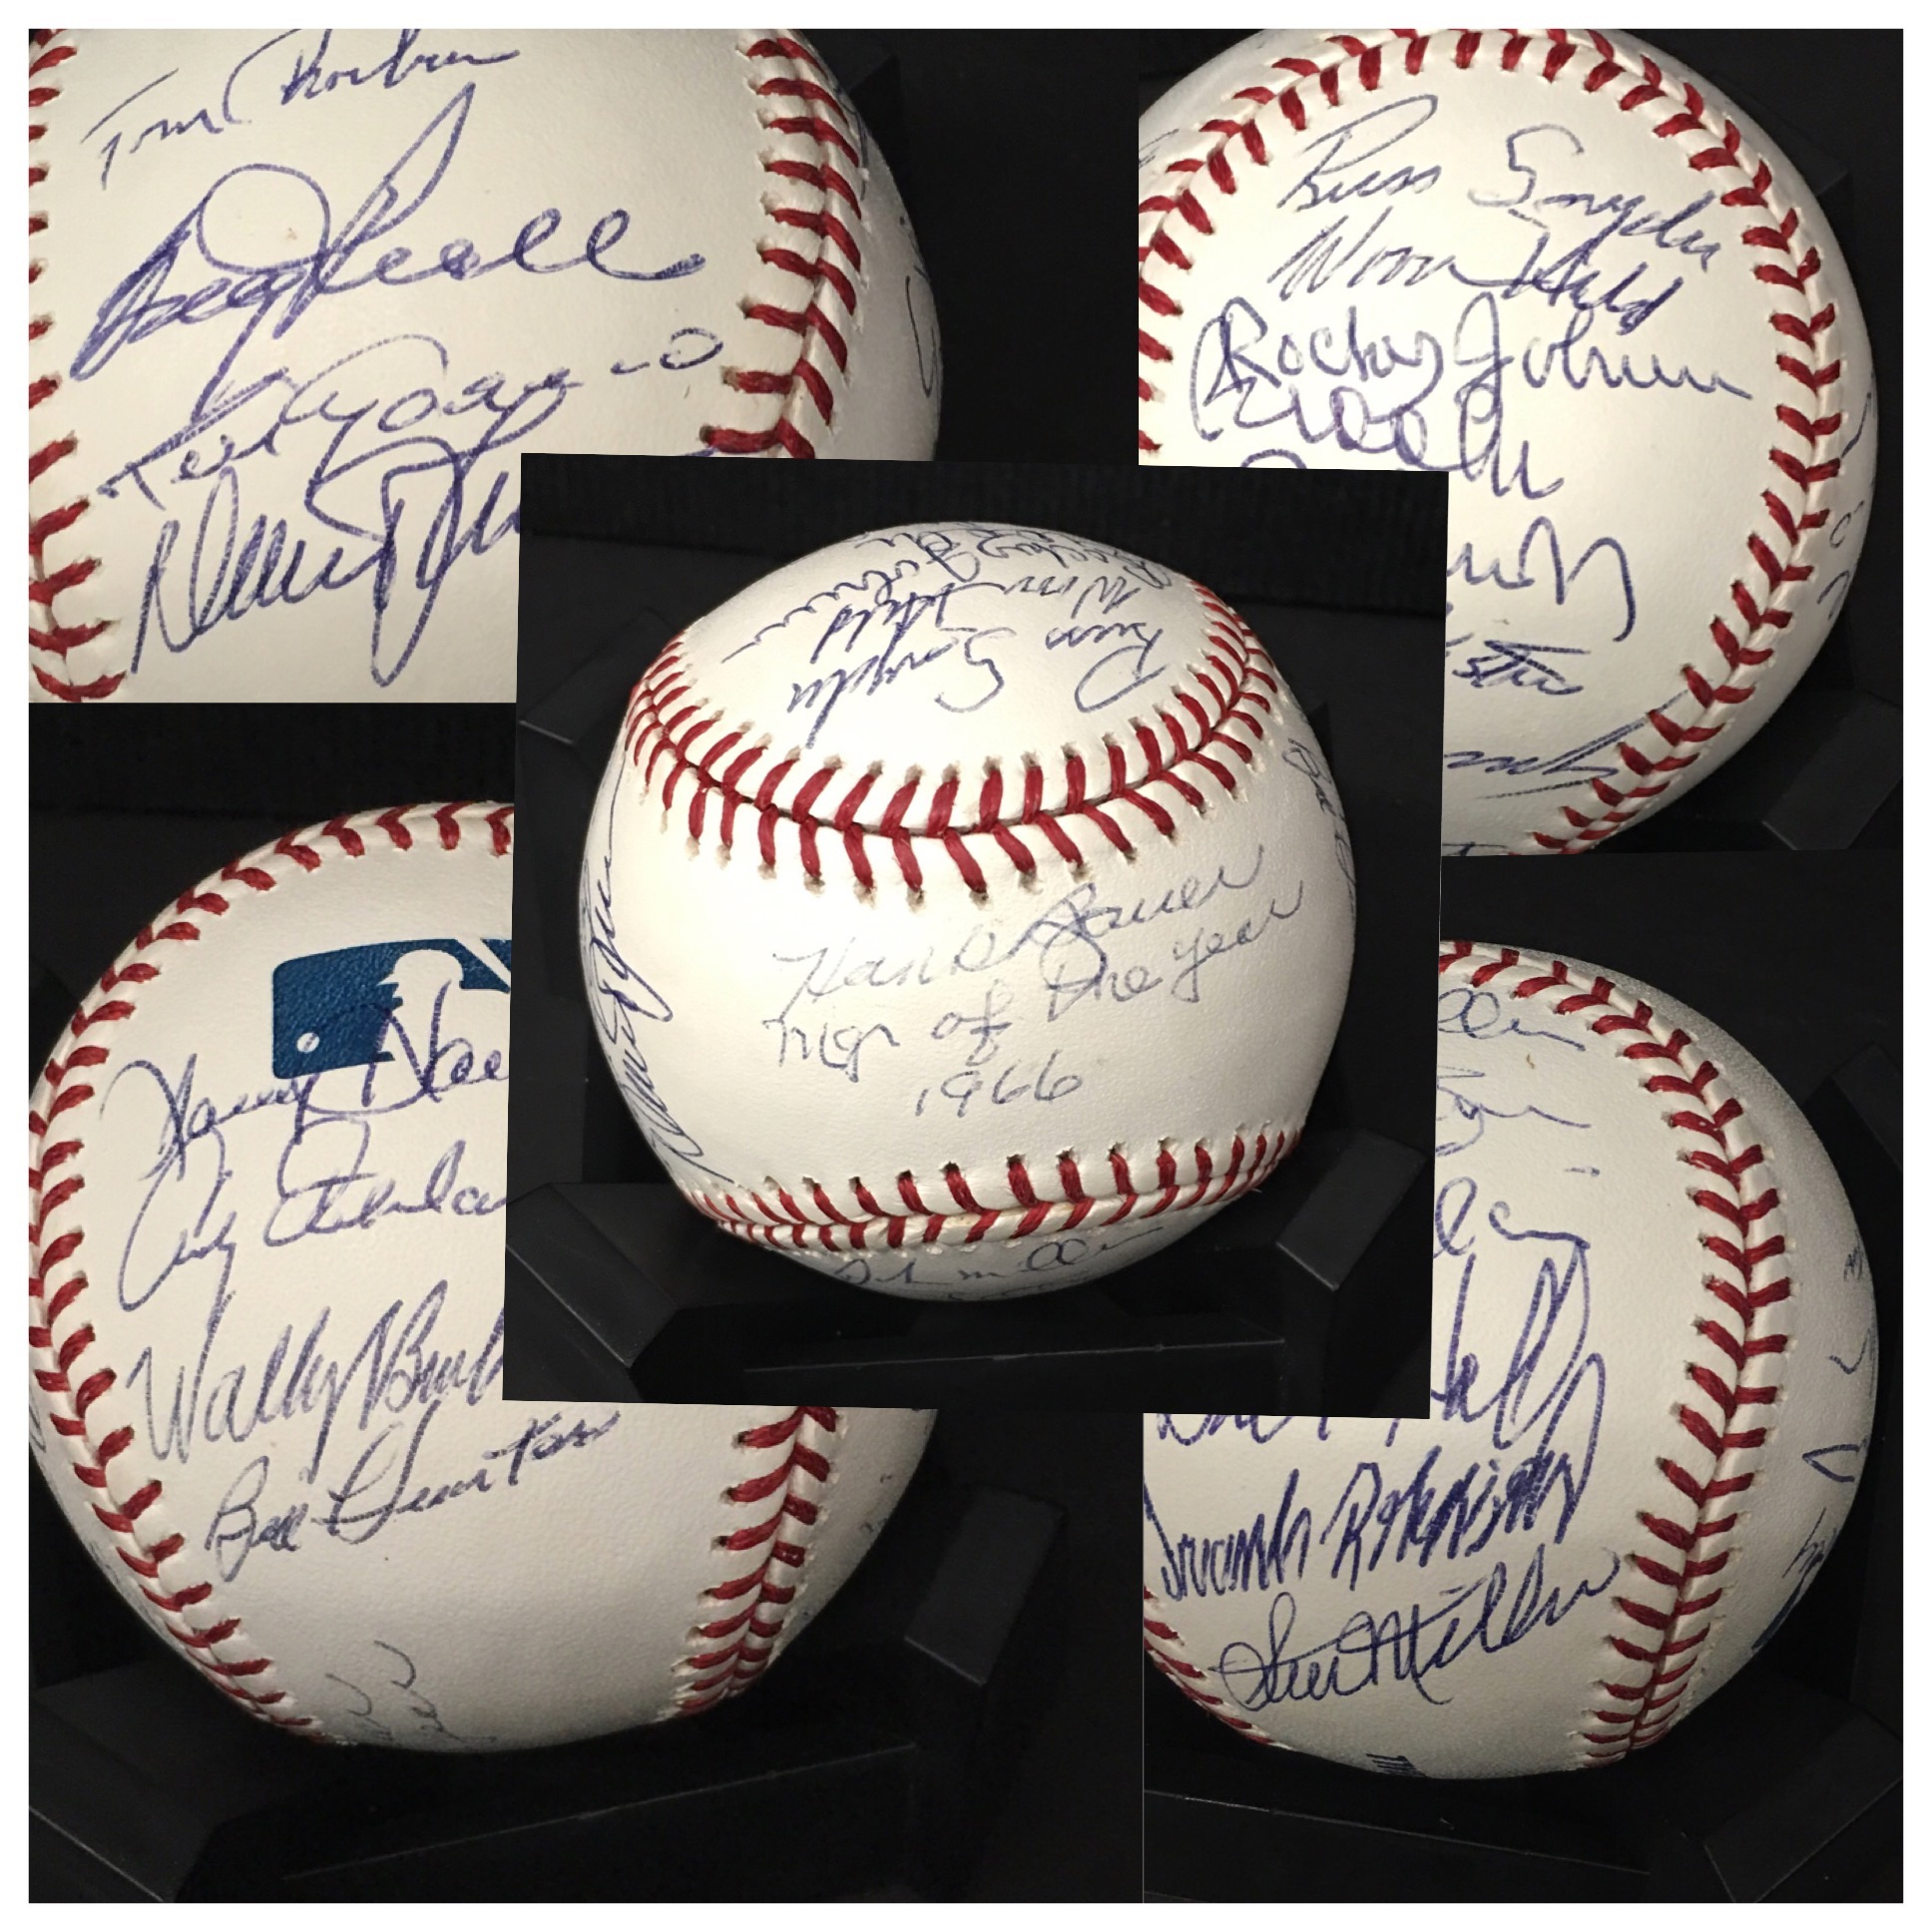 1966 Orioles team signed baseball